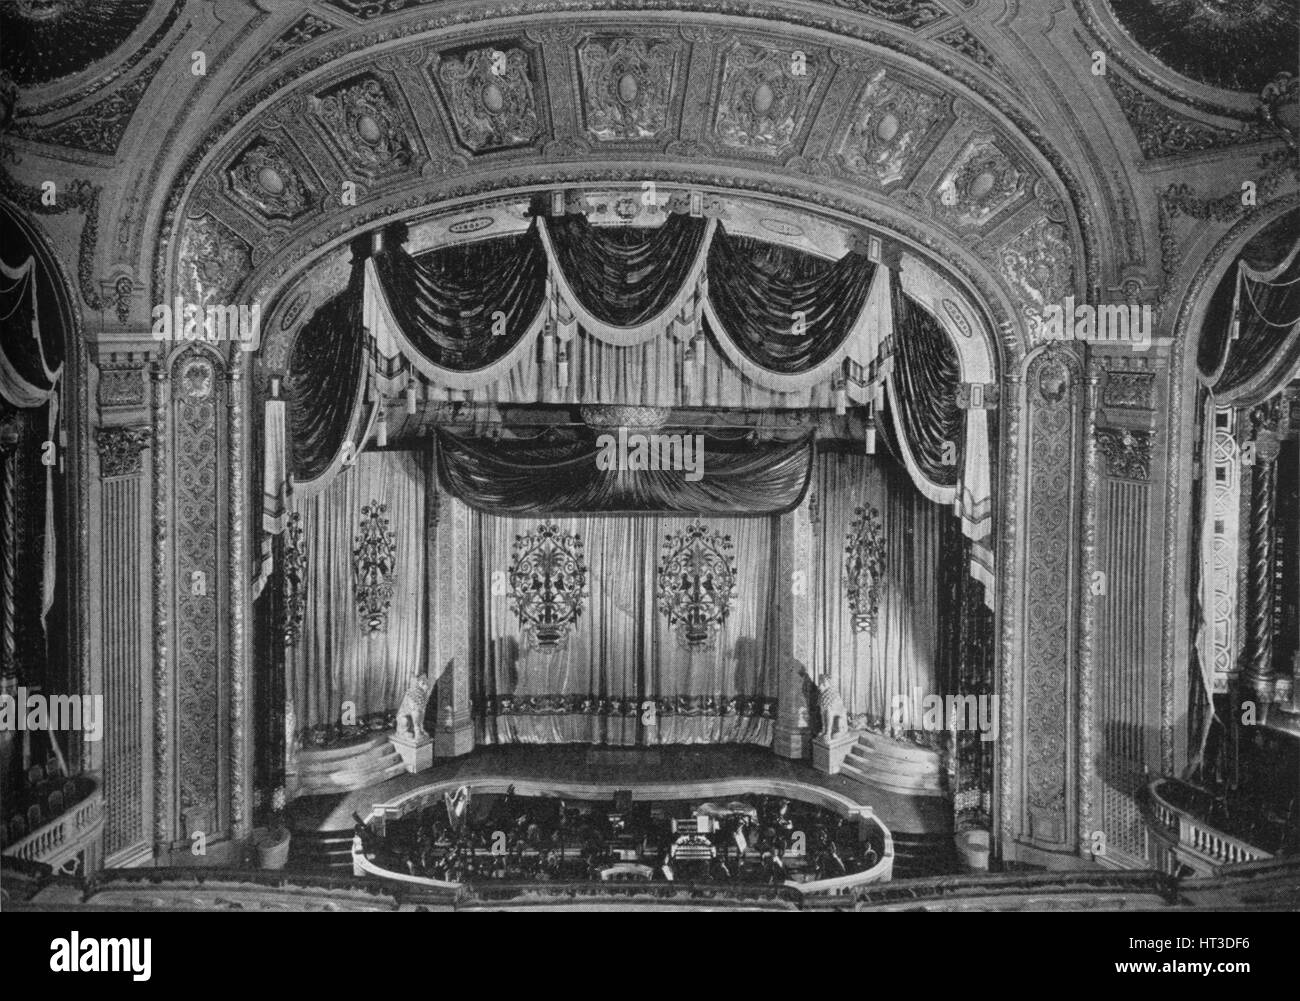 Tivoli Theatre Edinburgh Tivoli Theatre Stock Photos Tivoli Theatre Stock Images Alamy